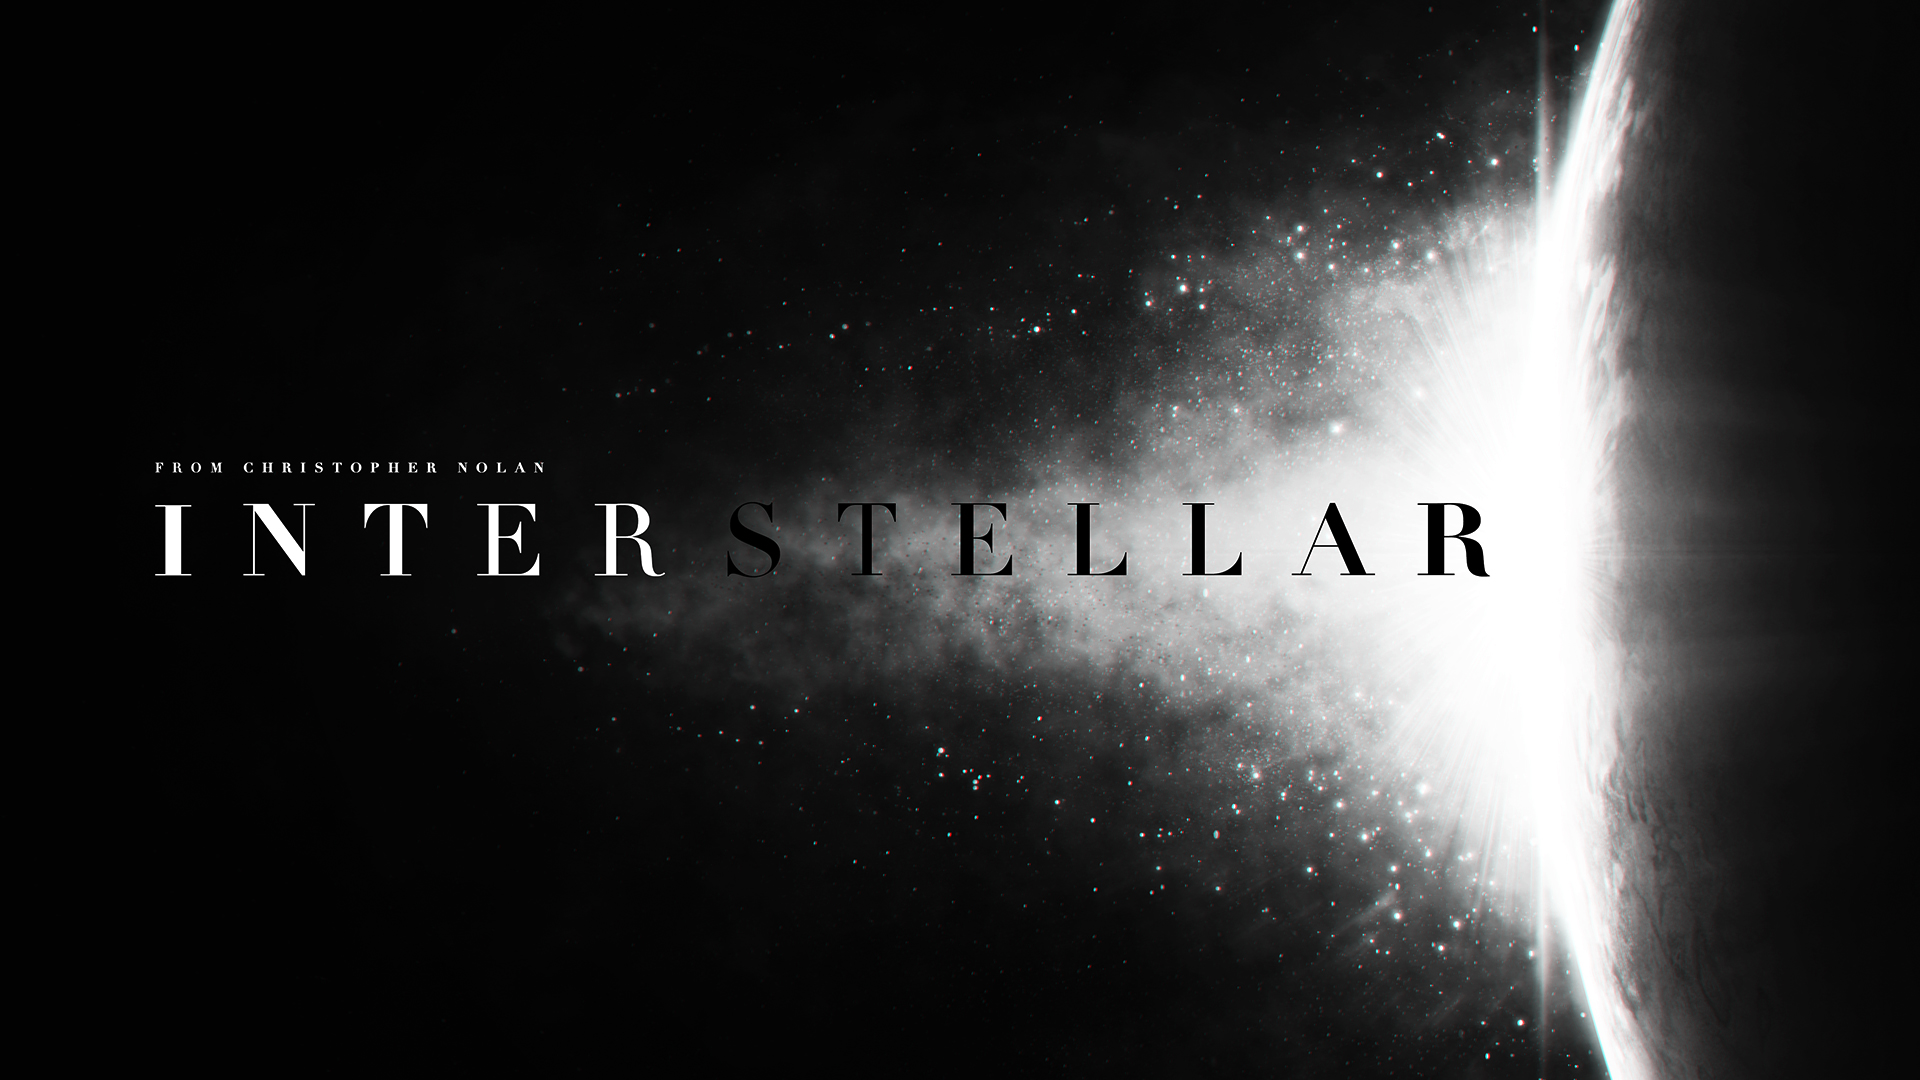 Interestellar